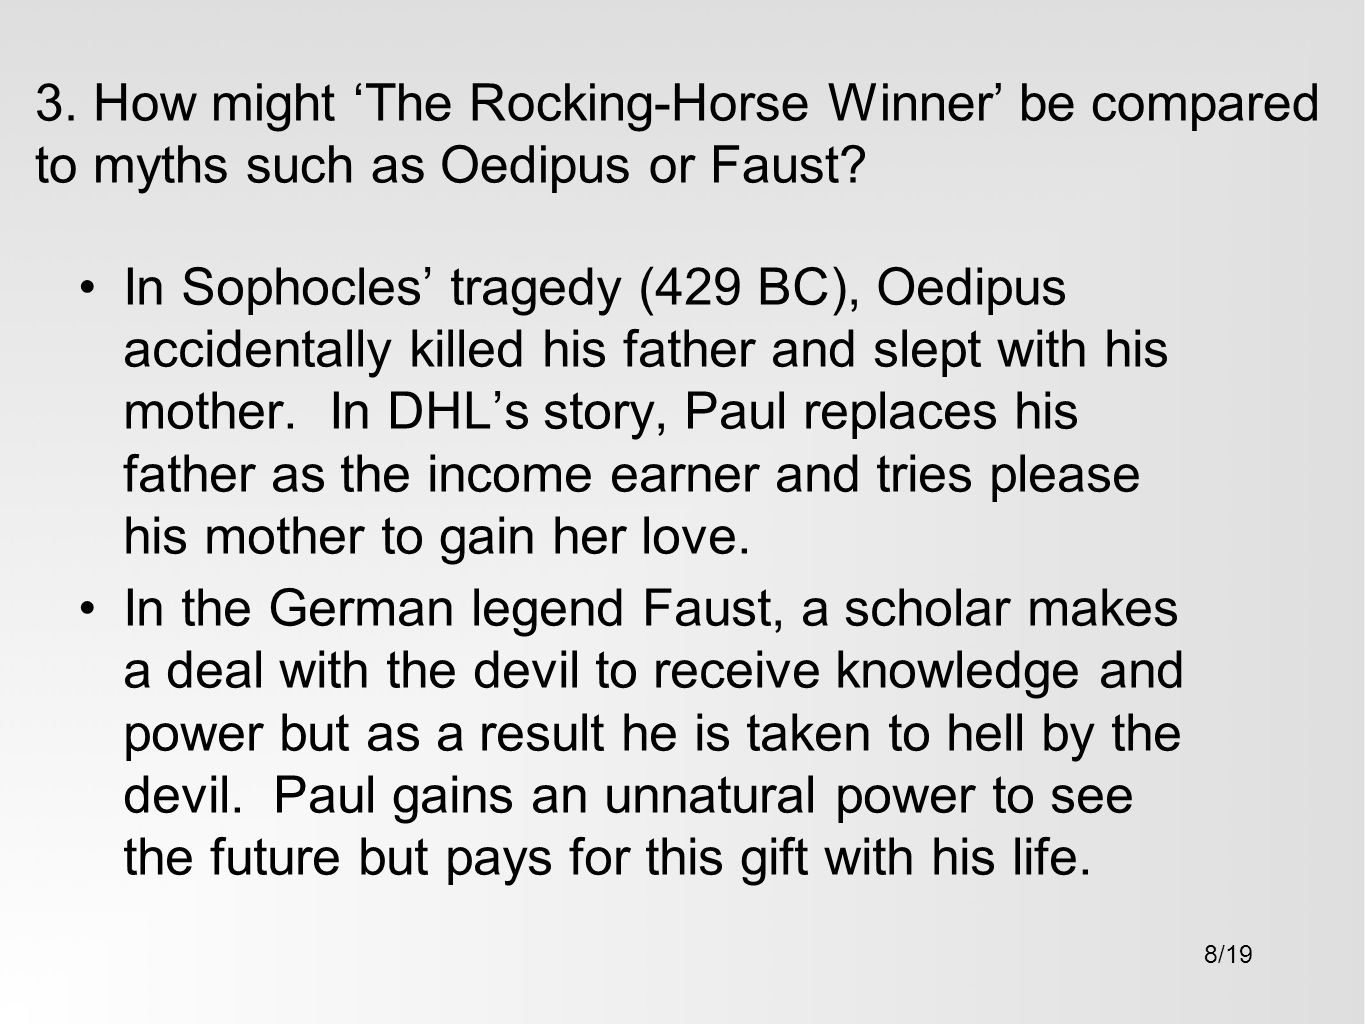 the rocking horse winner materialism Dvd review -- the rocking horse winner based on a story by dh lawrence directed by anthony pelissier starring valerie hobson, john howard davies, ronald squire.